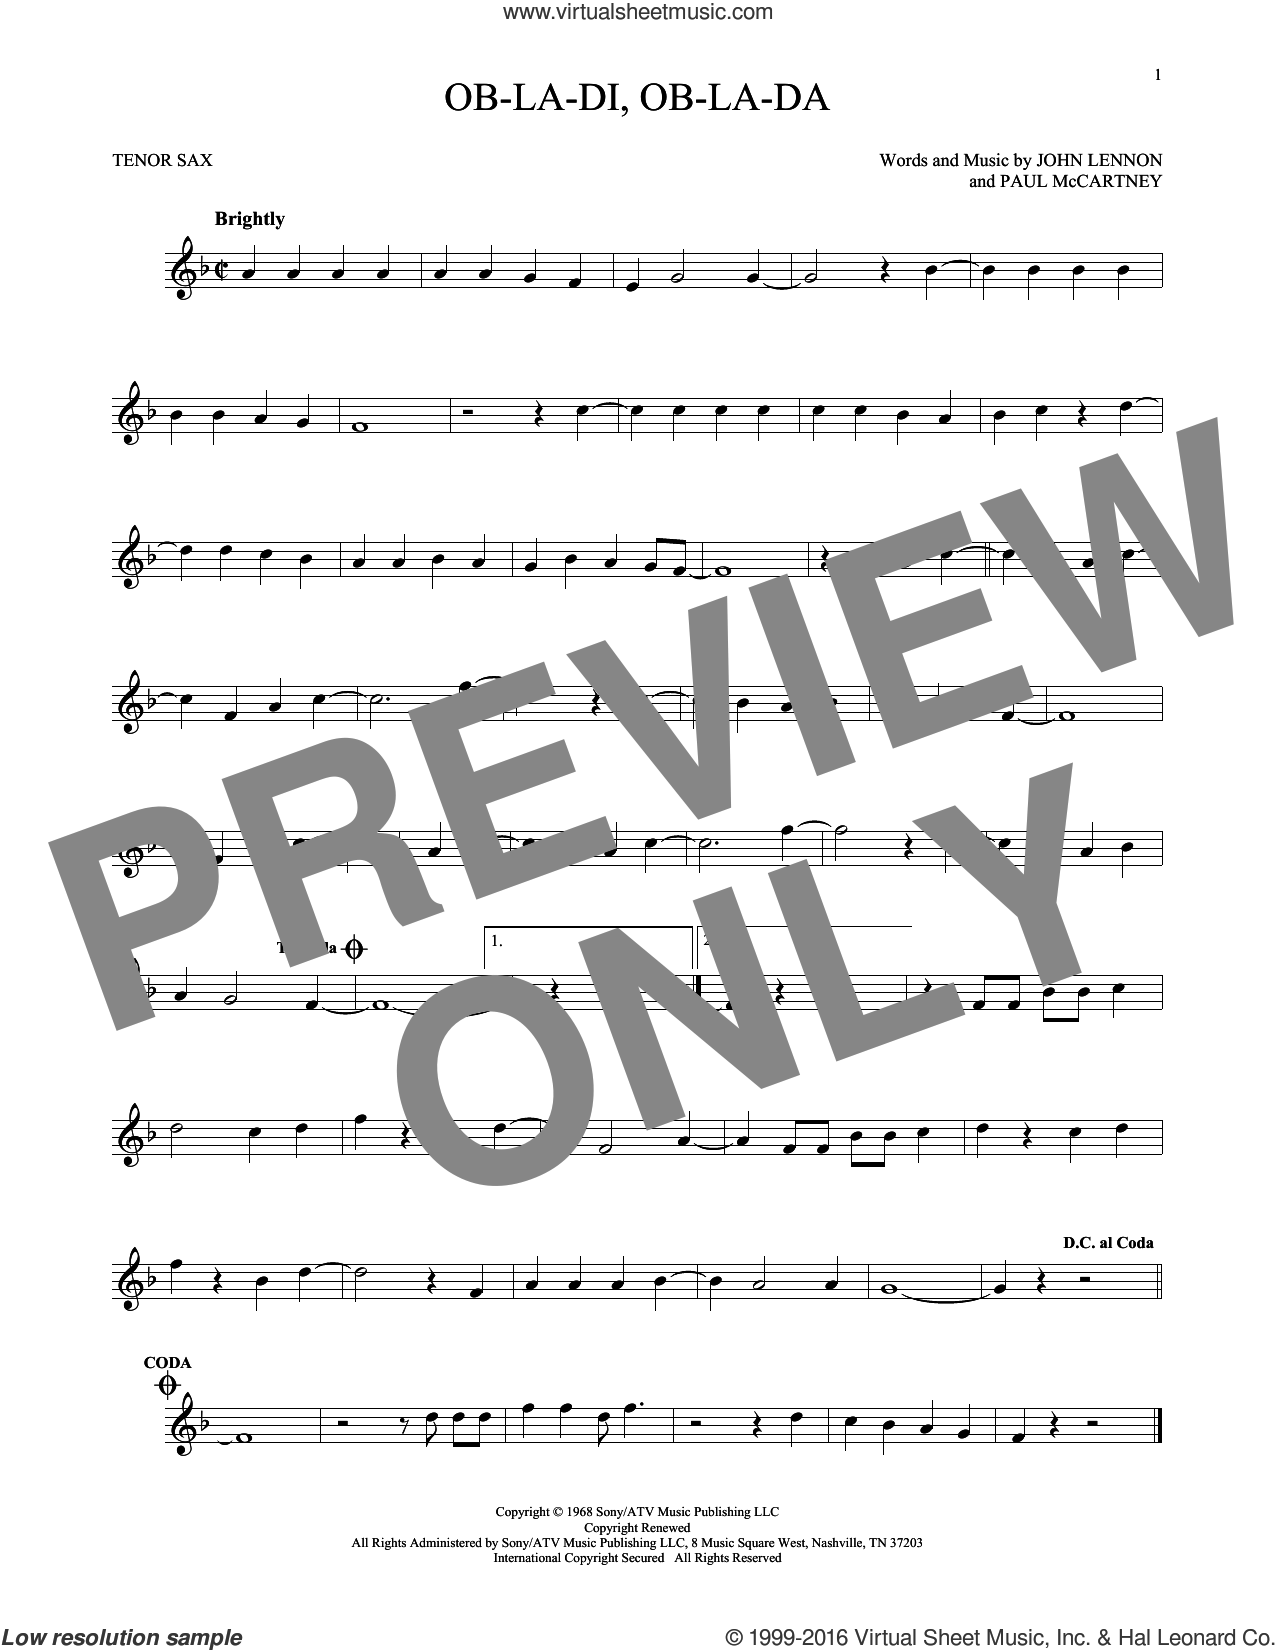 Ob-La-Di, Ob-La-Da sheet music for tenor saxophone solo by The Beatles, John Lennon and Paul McCartney, intermediate skill level